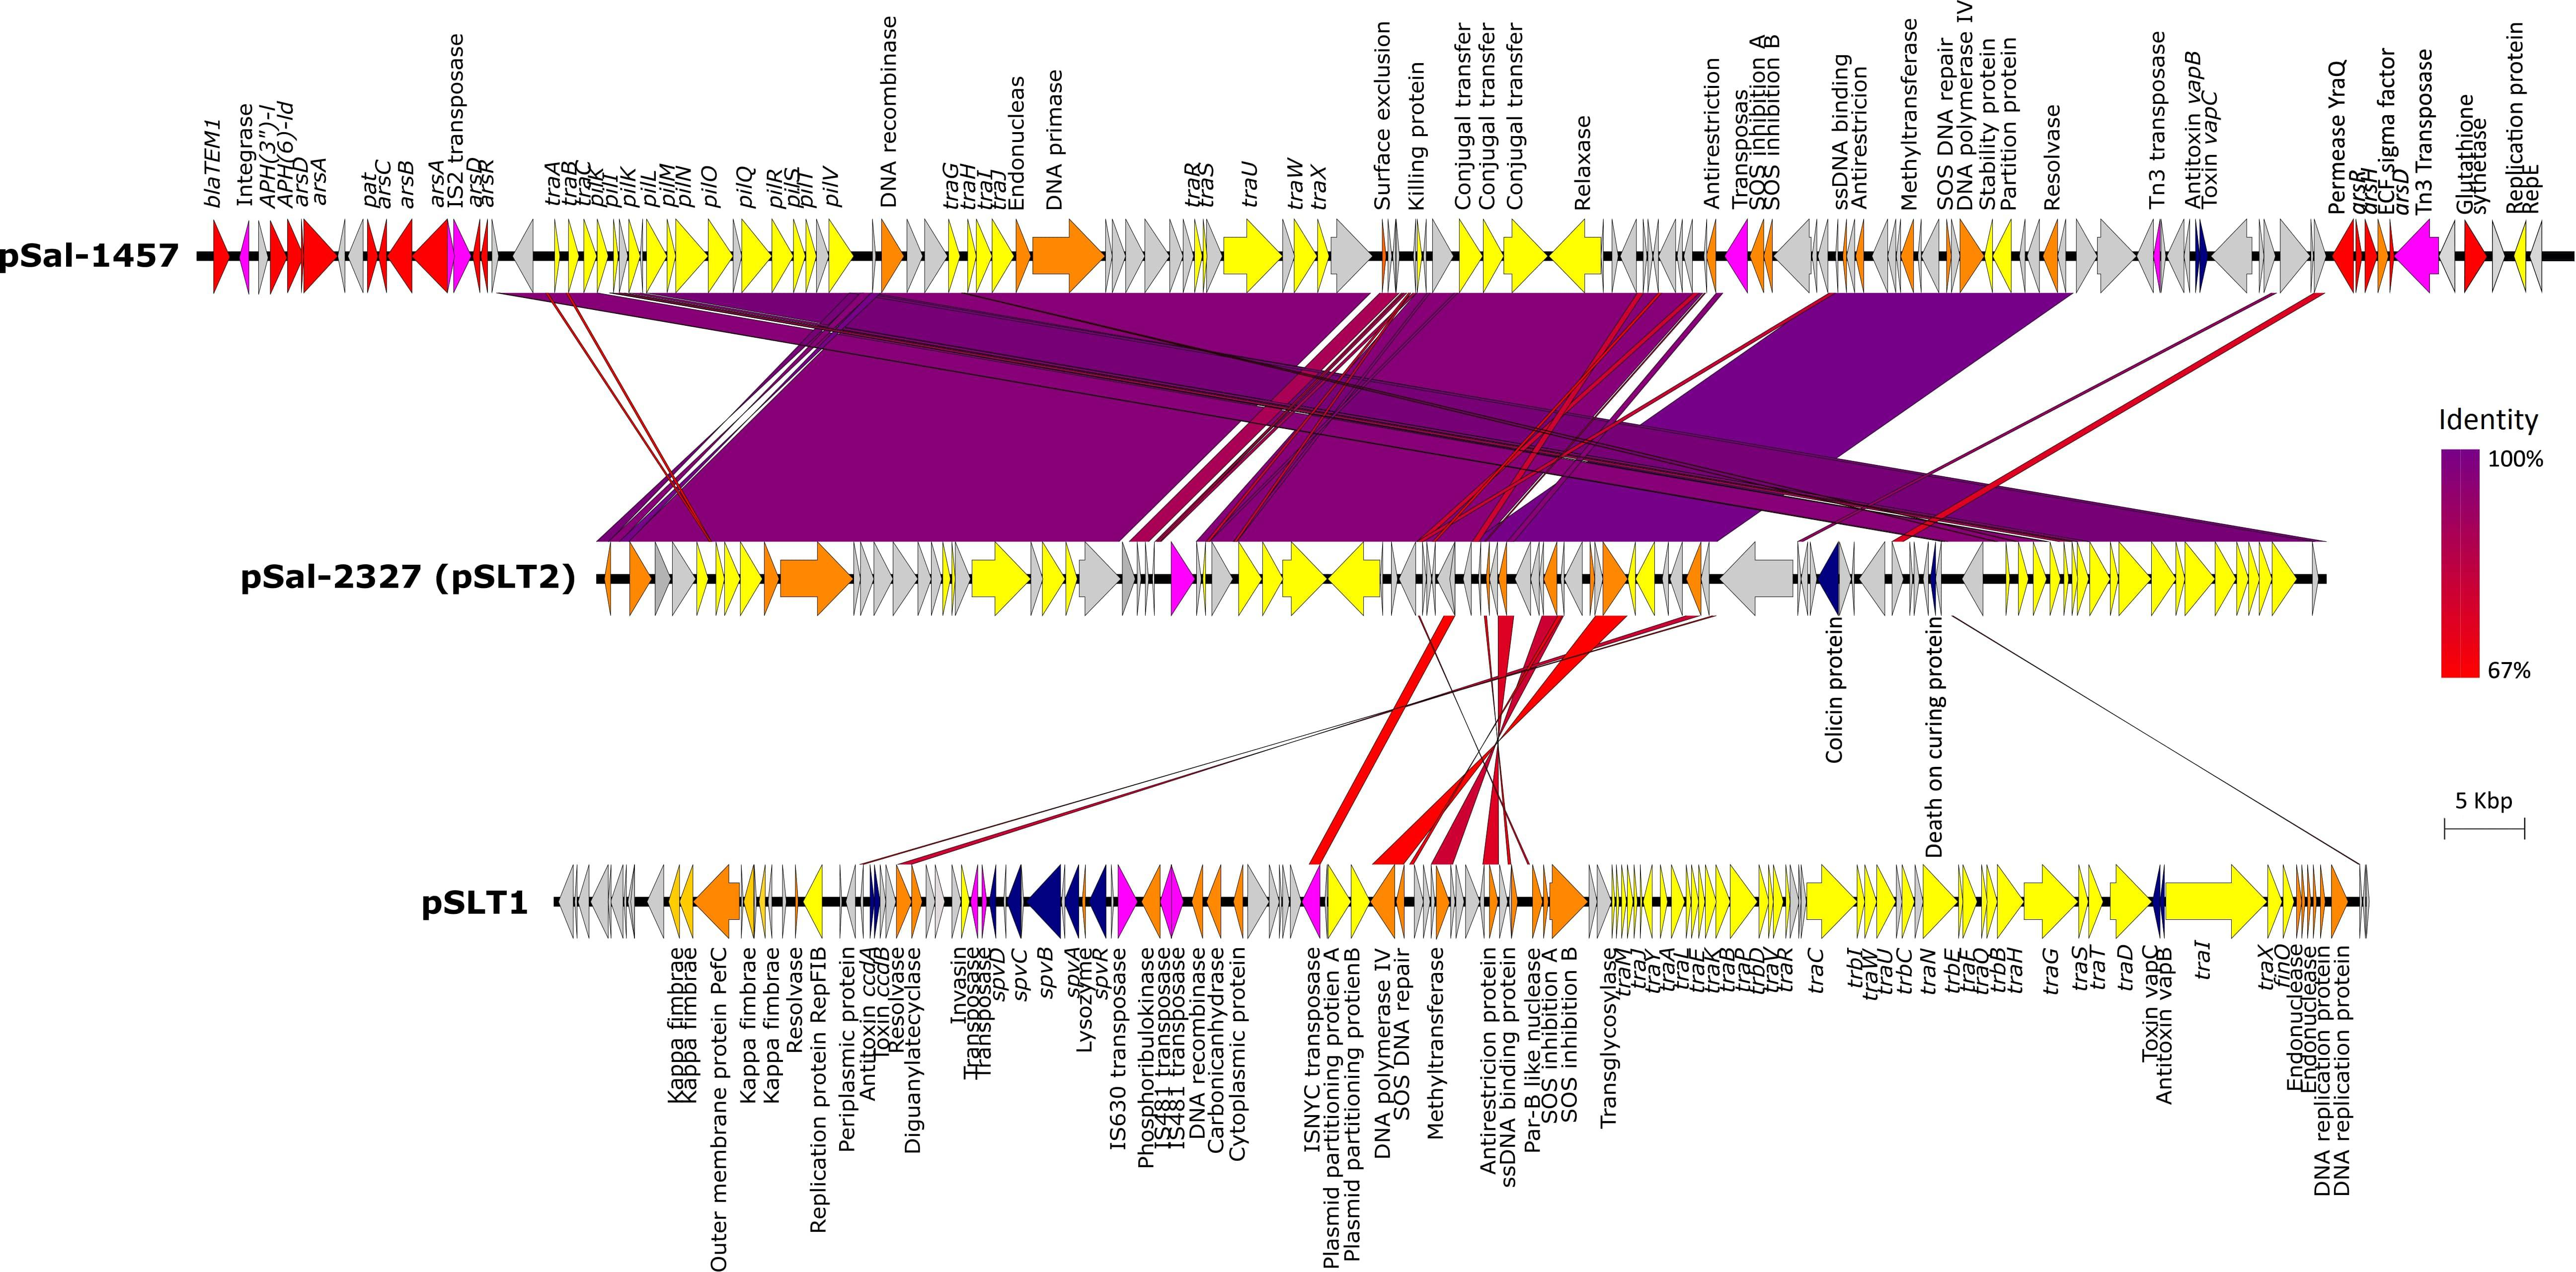 Frontiers | Comparative Genomics and Phenotypic